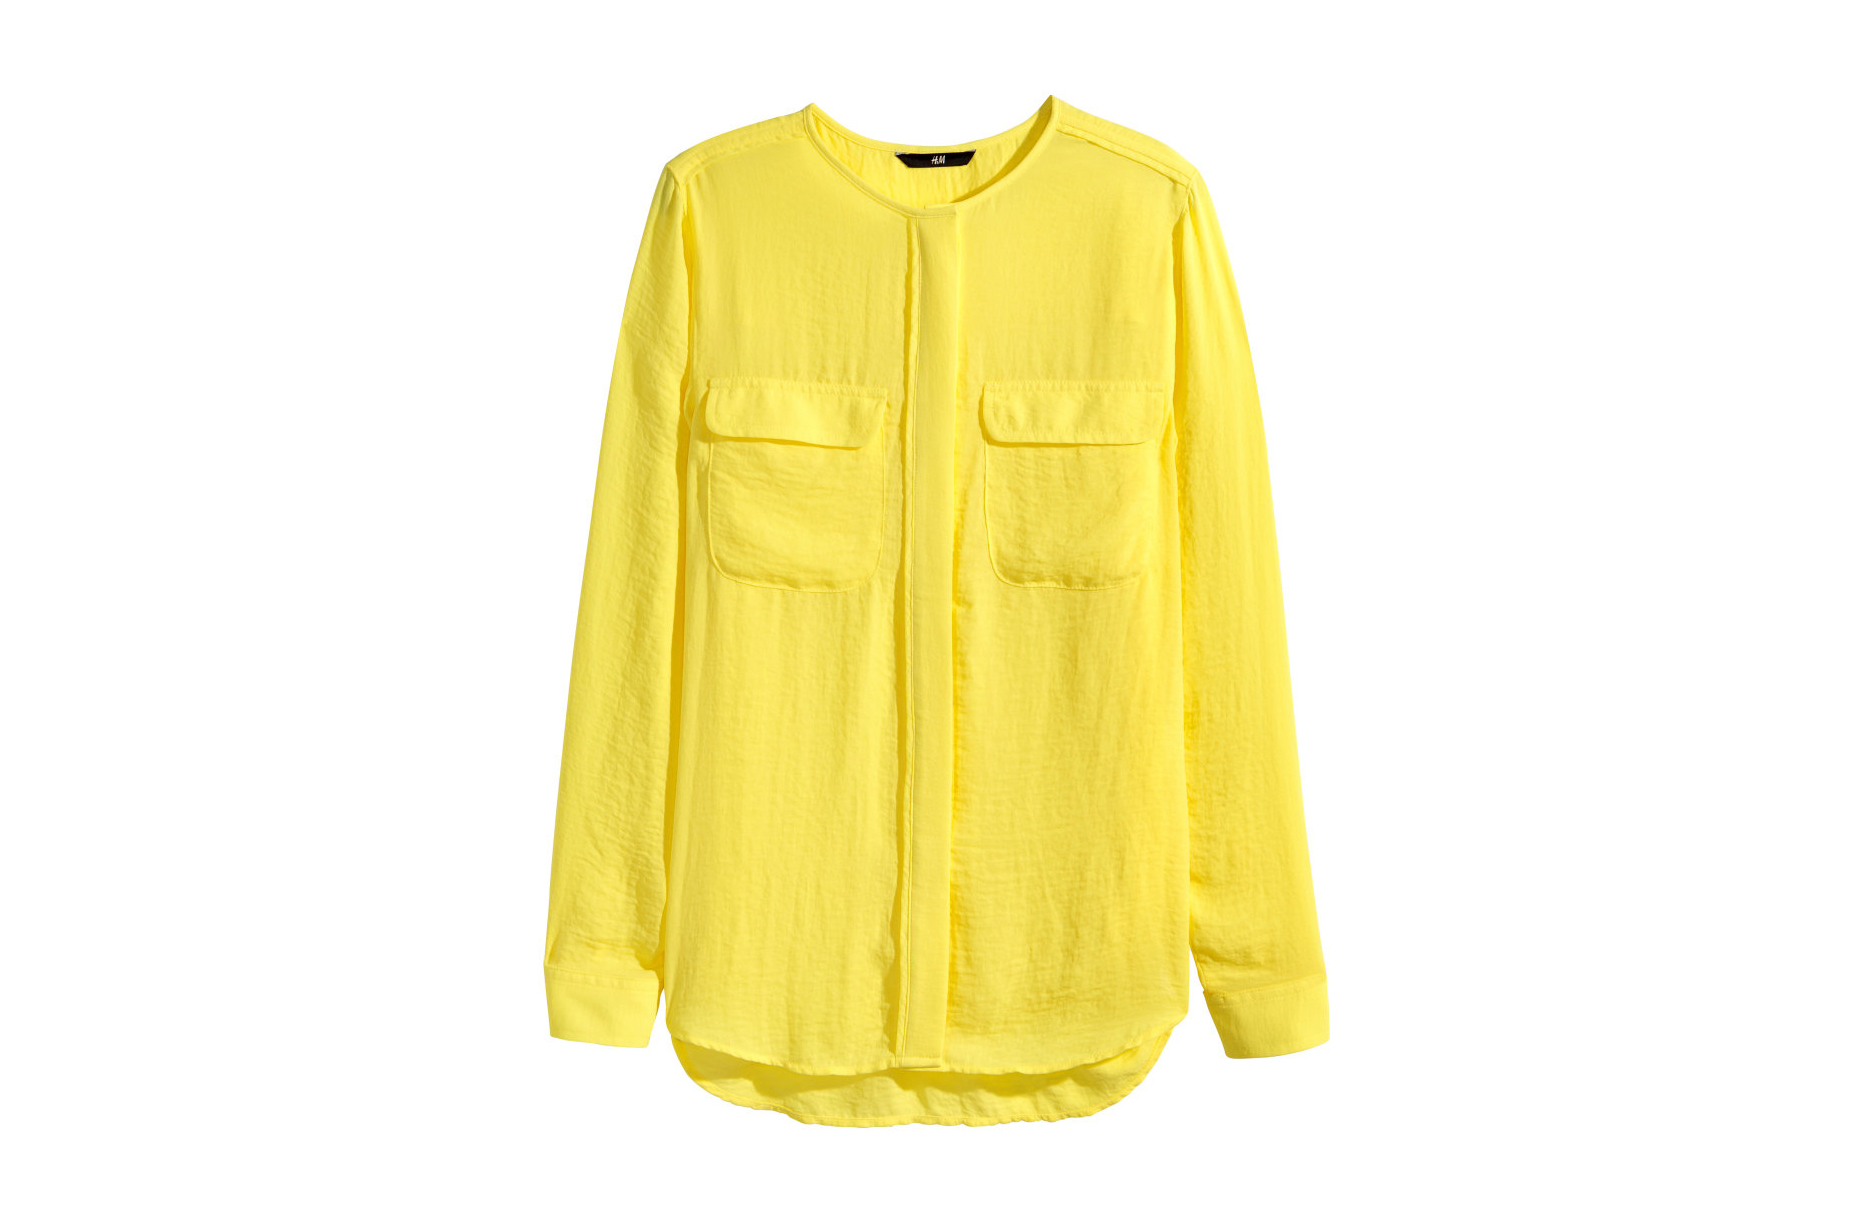 H&M Airy Blouse Yellow